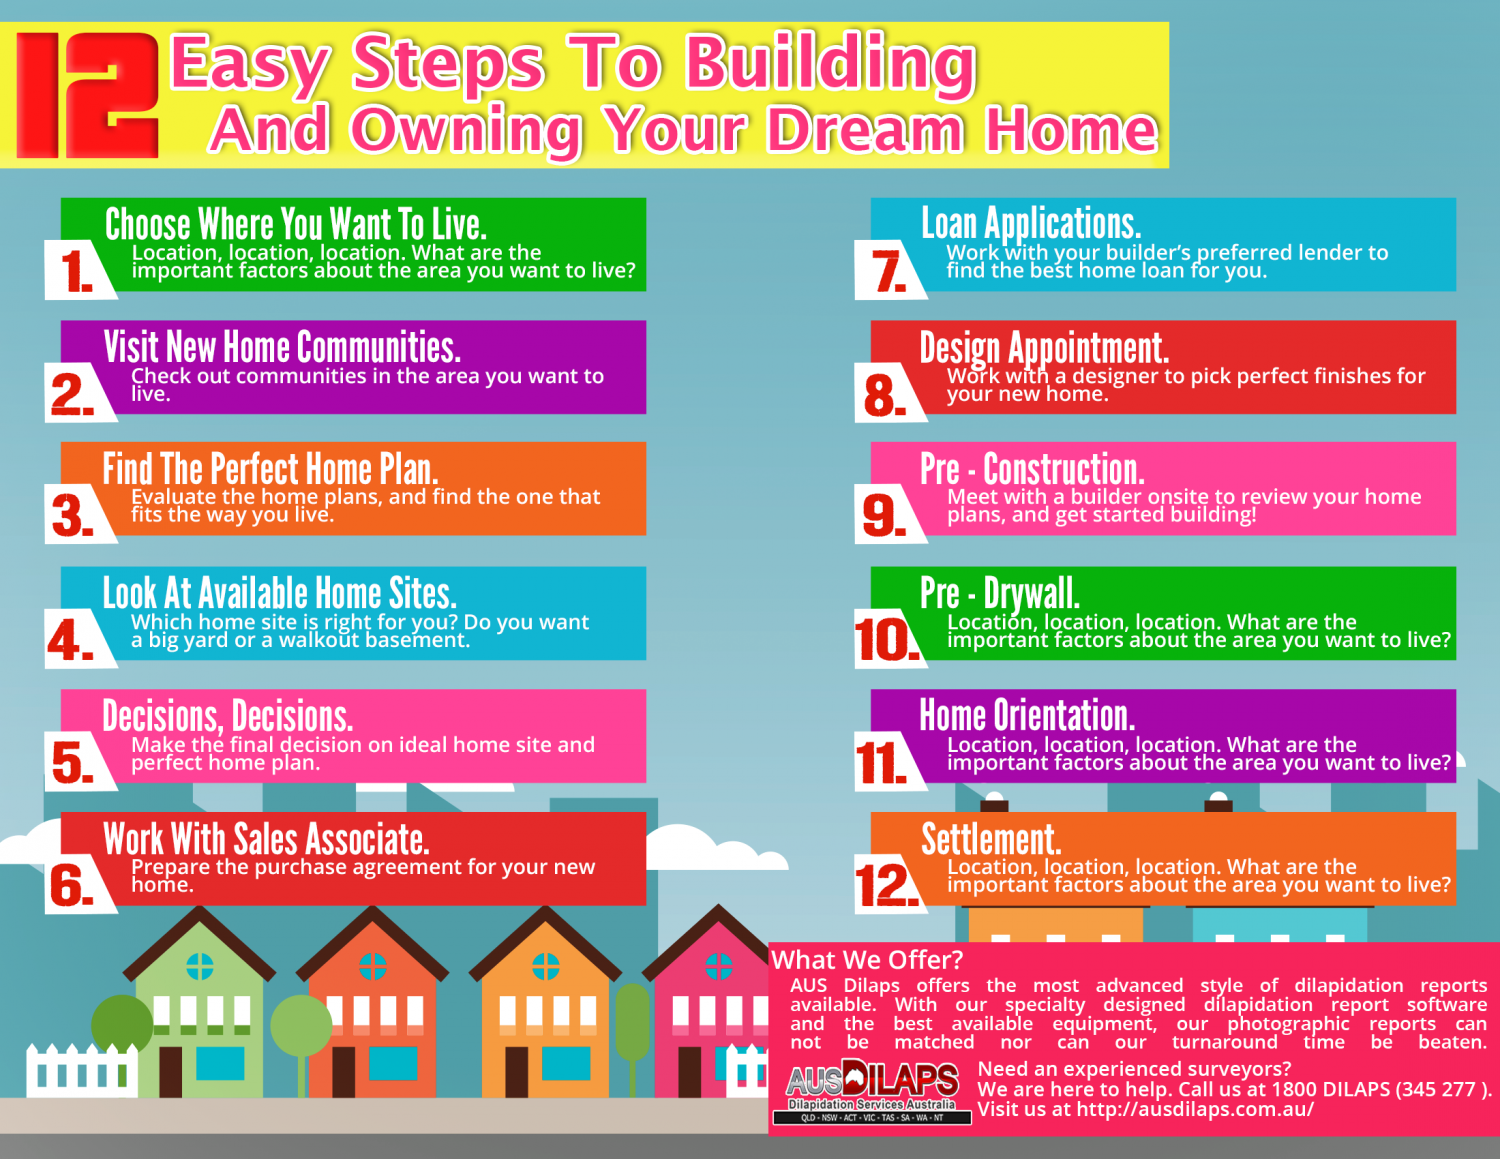 12 Easy Steps To Building And Owning Your Dream Home